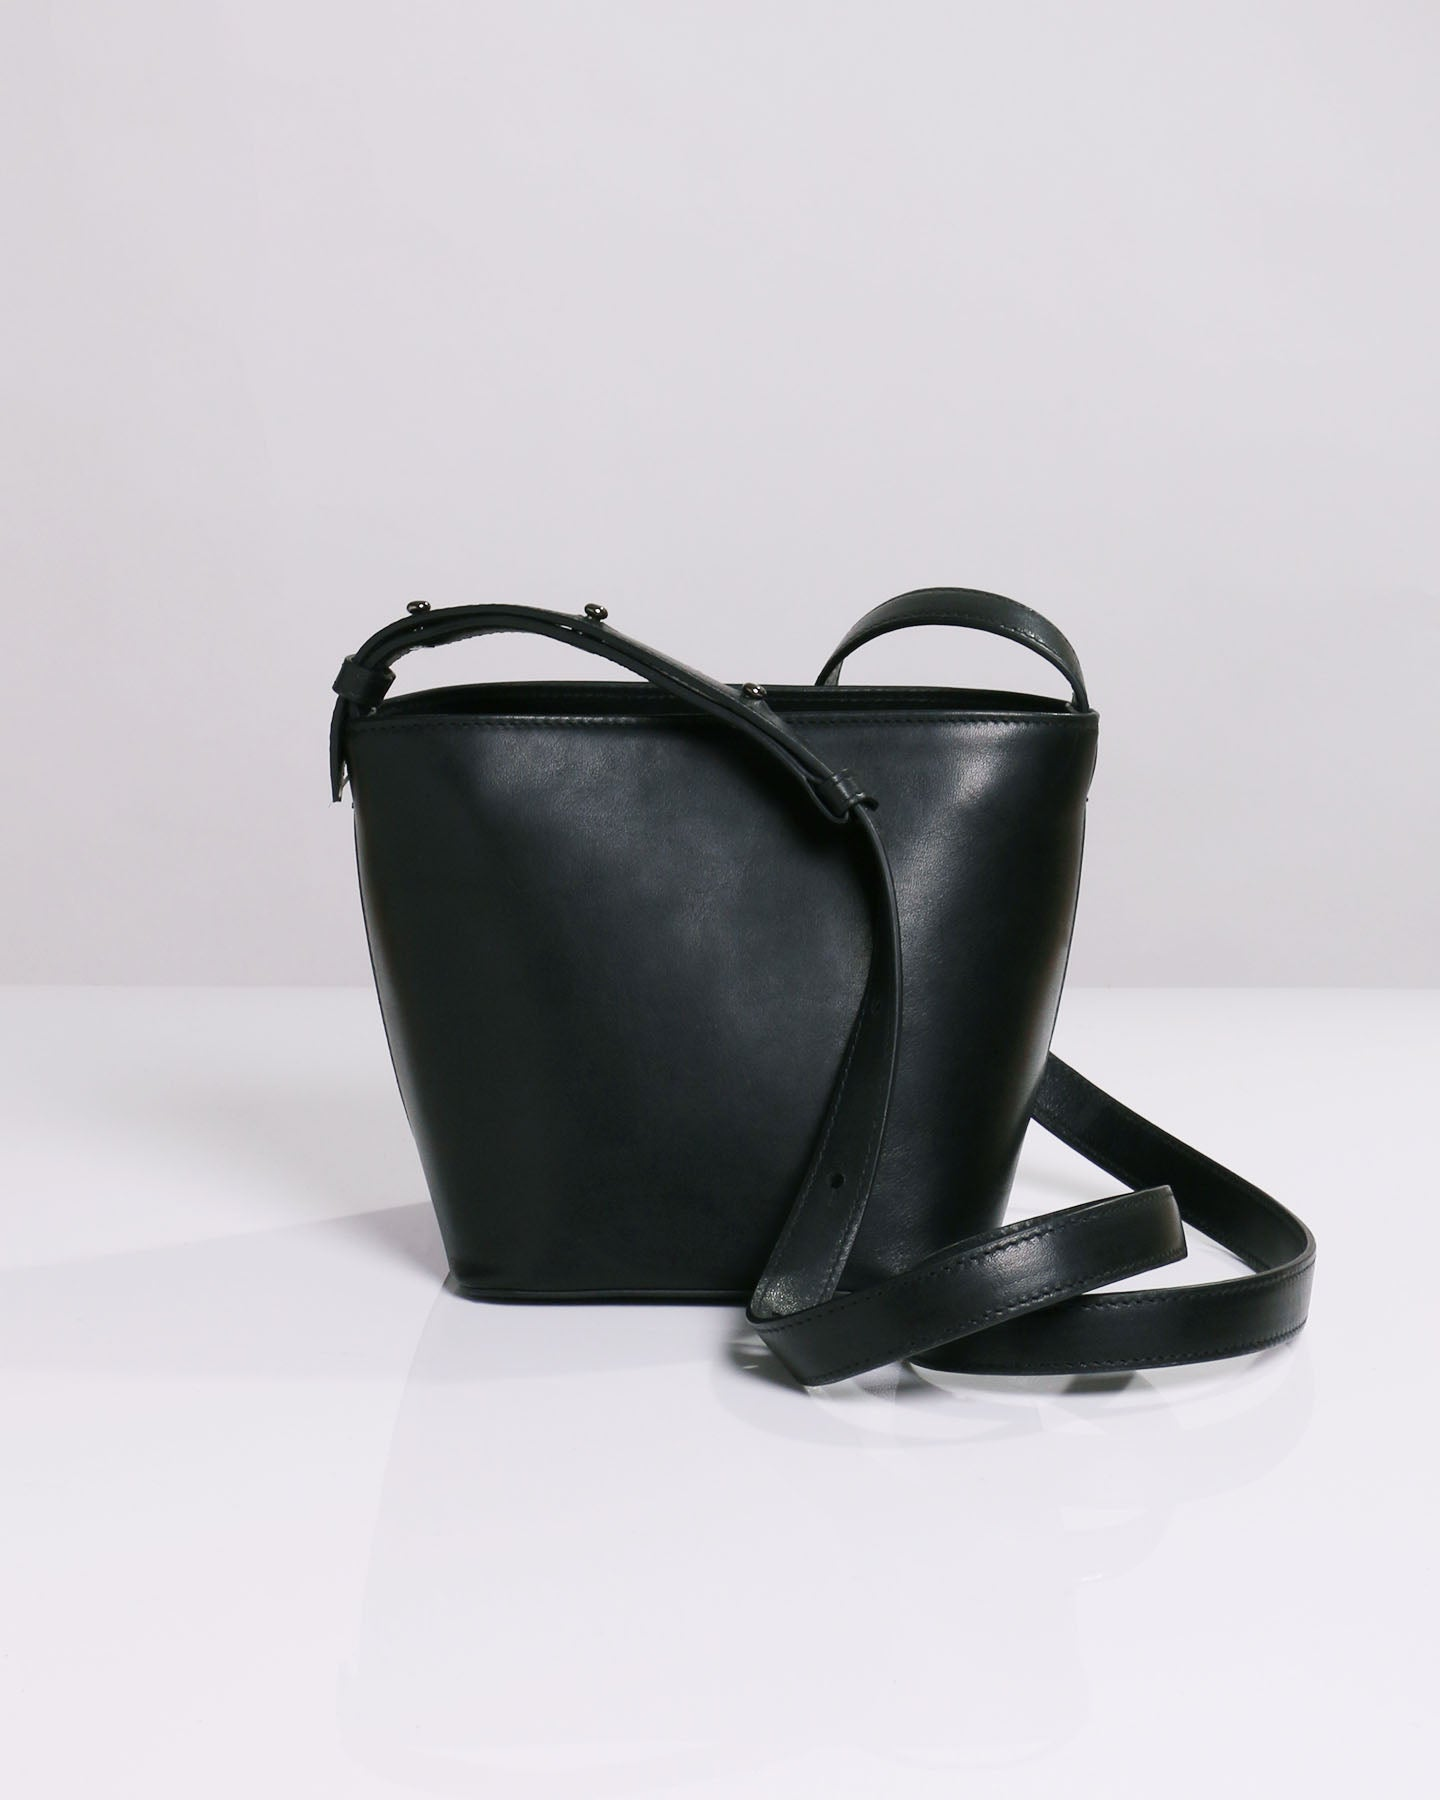 JIMMY - Handbag | Unyé Design